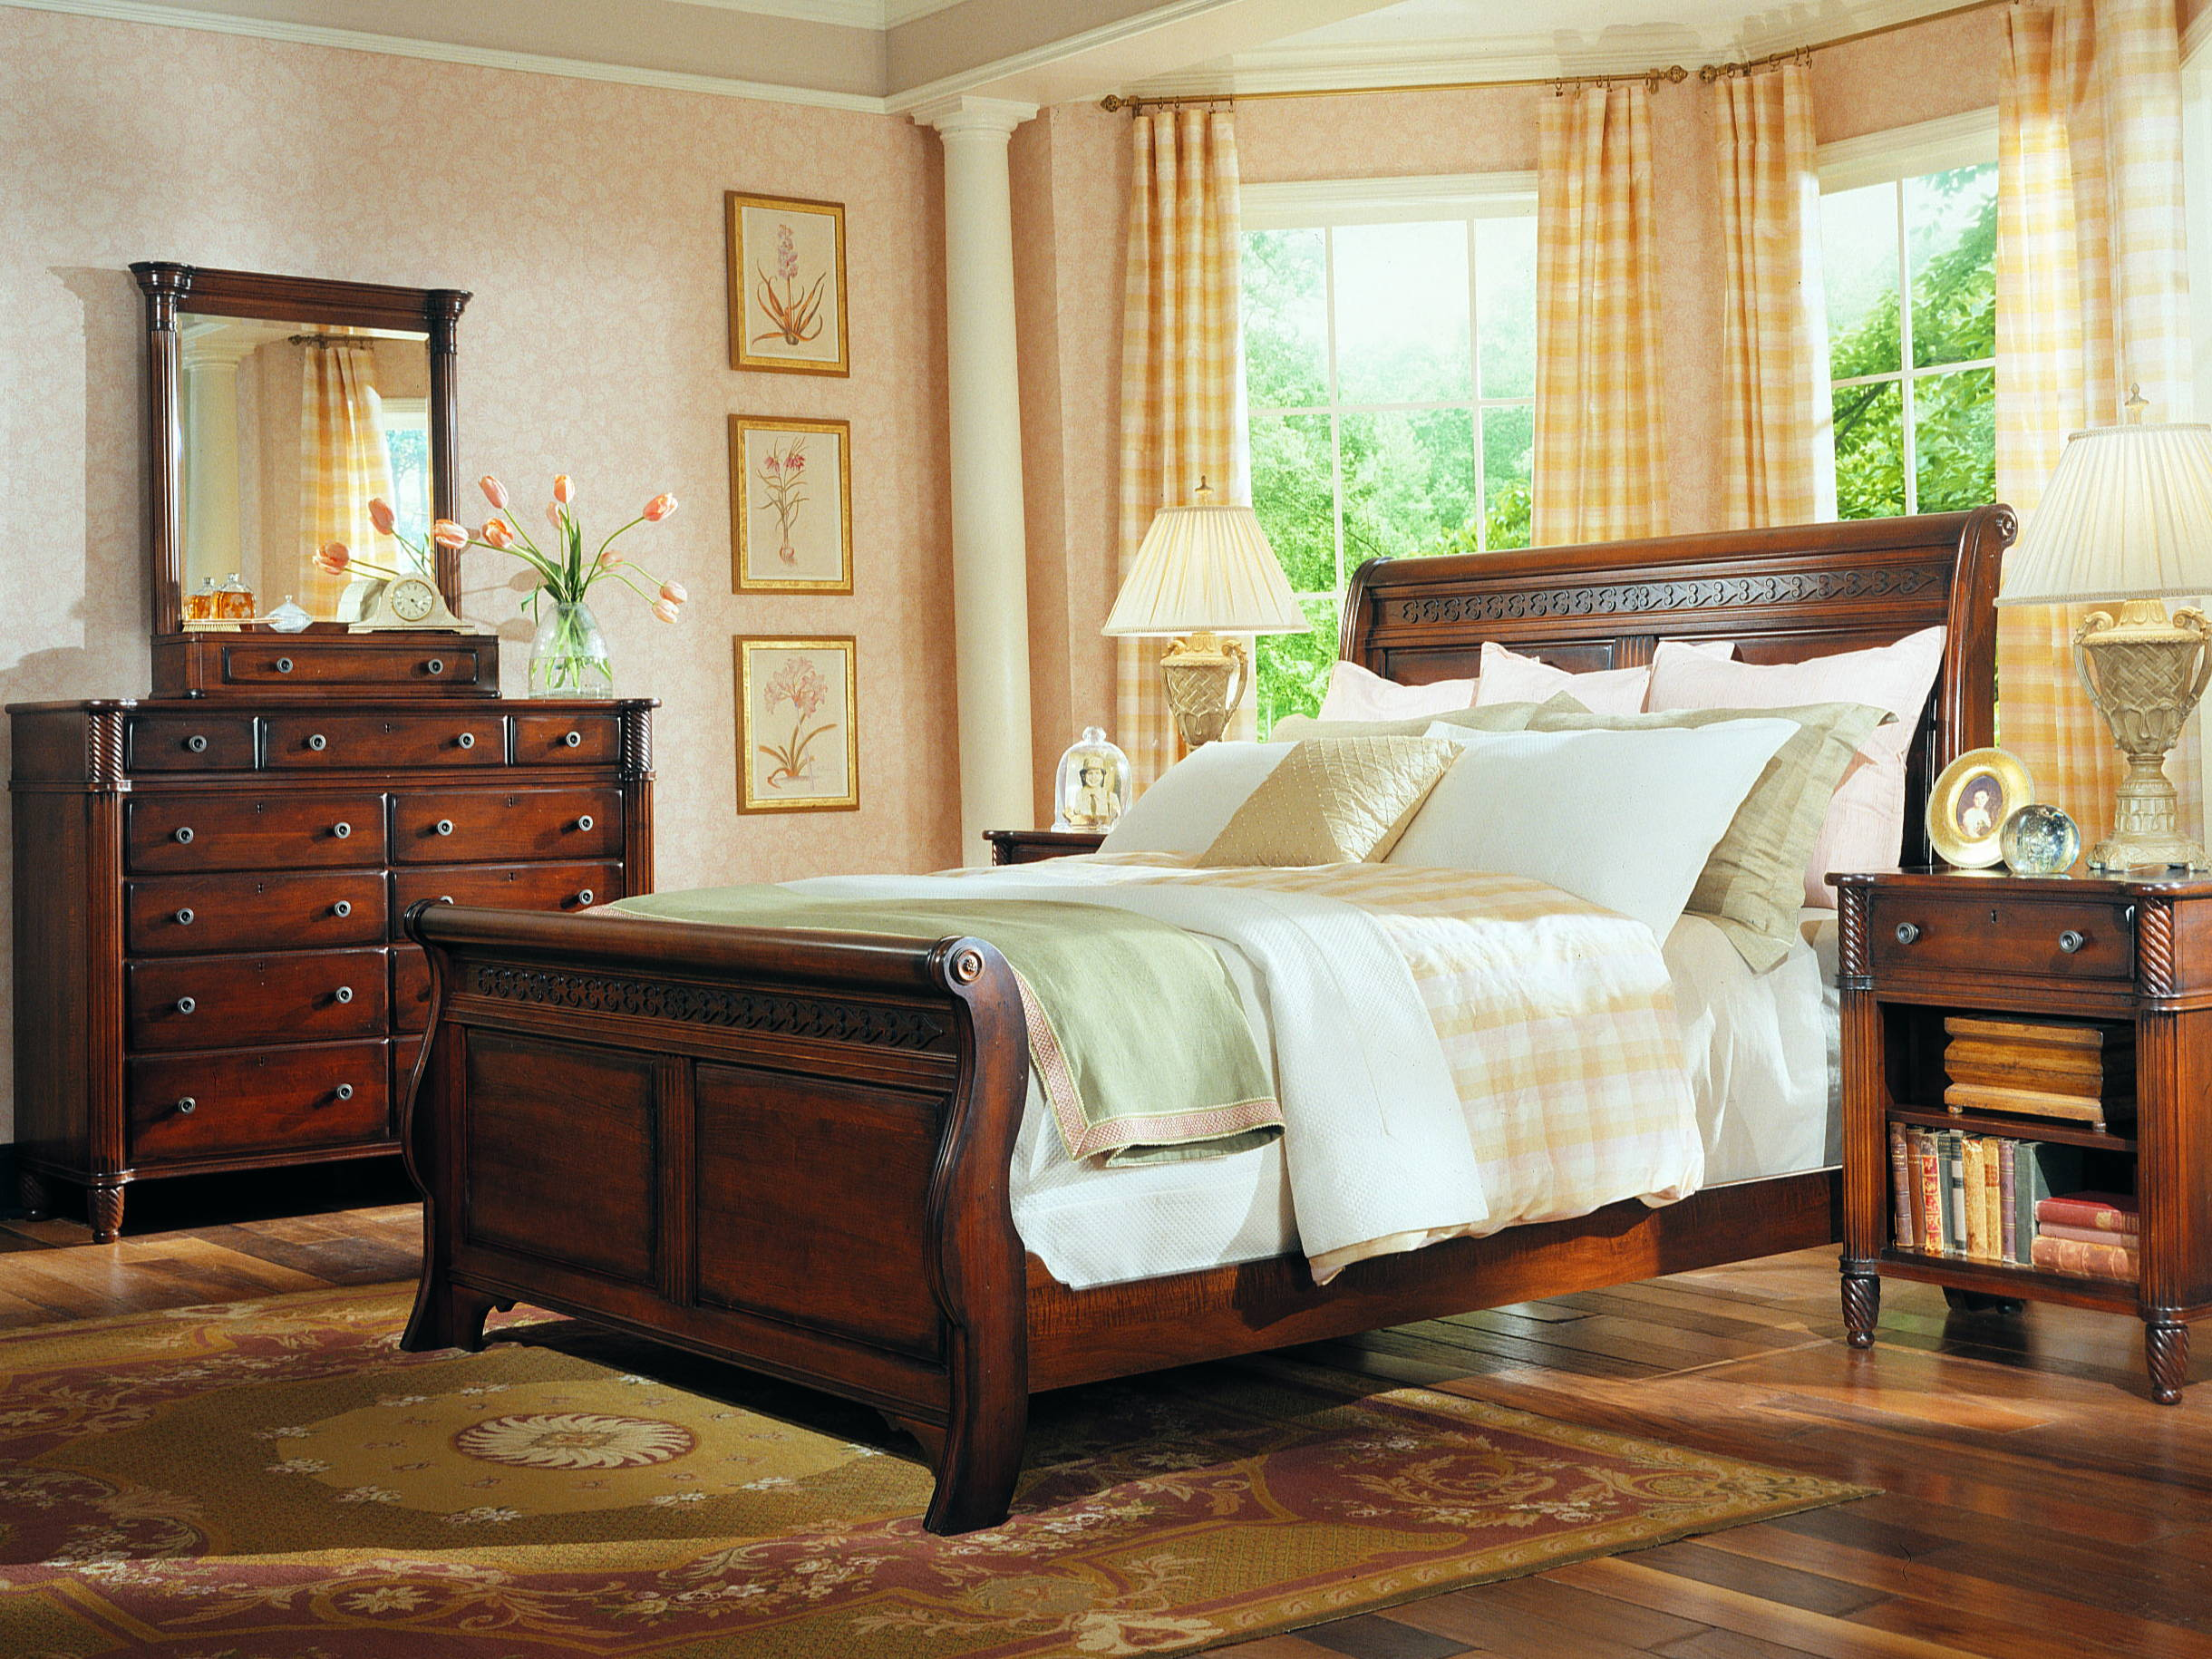 Solid Wood Bedroom Furniture - Made in Canada - Available at